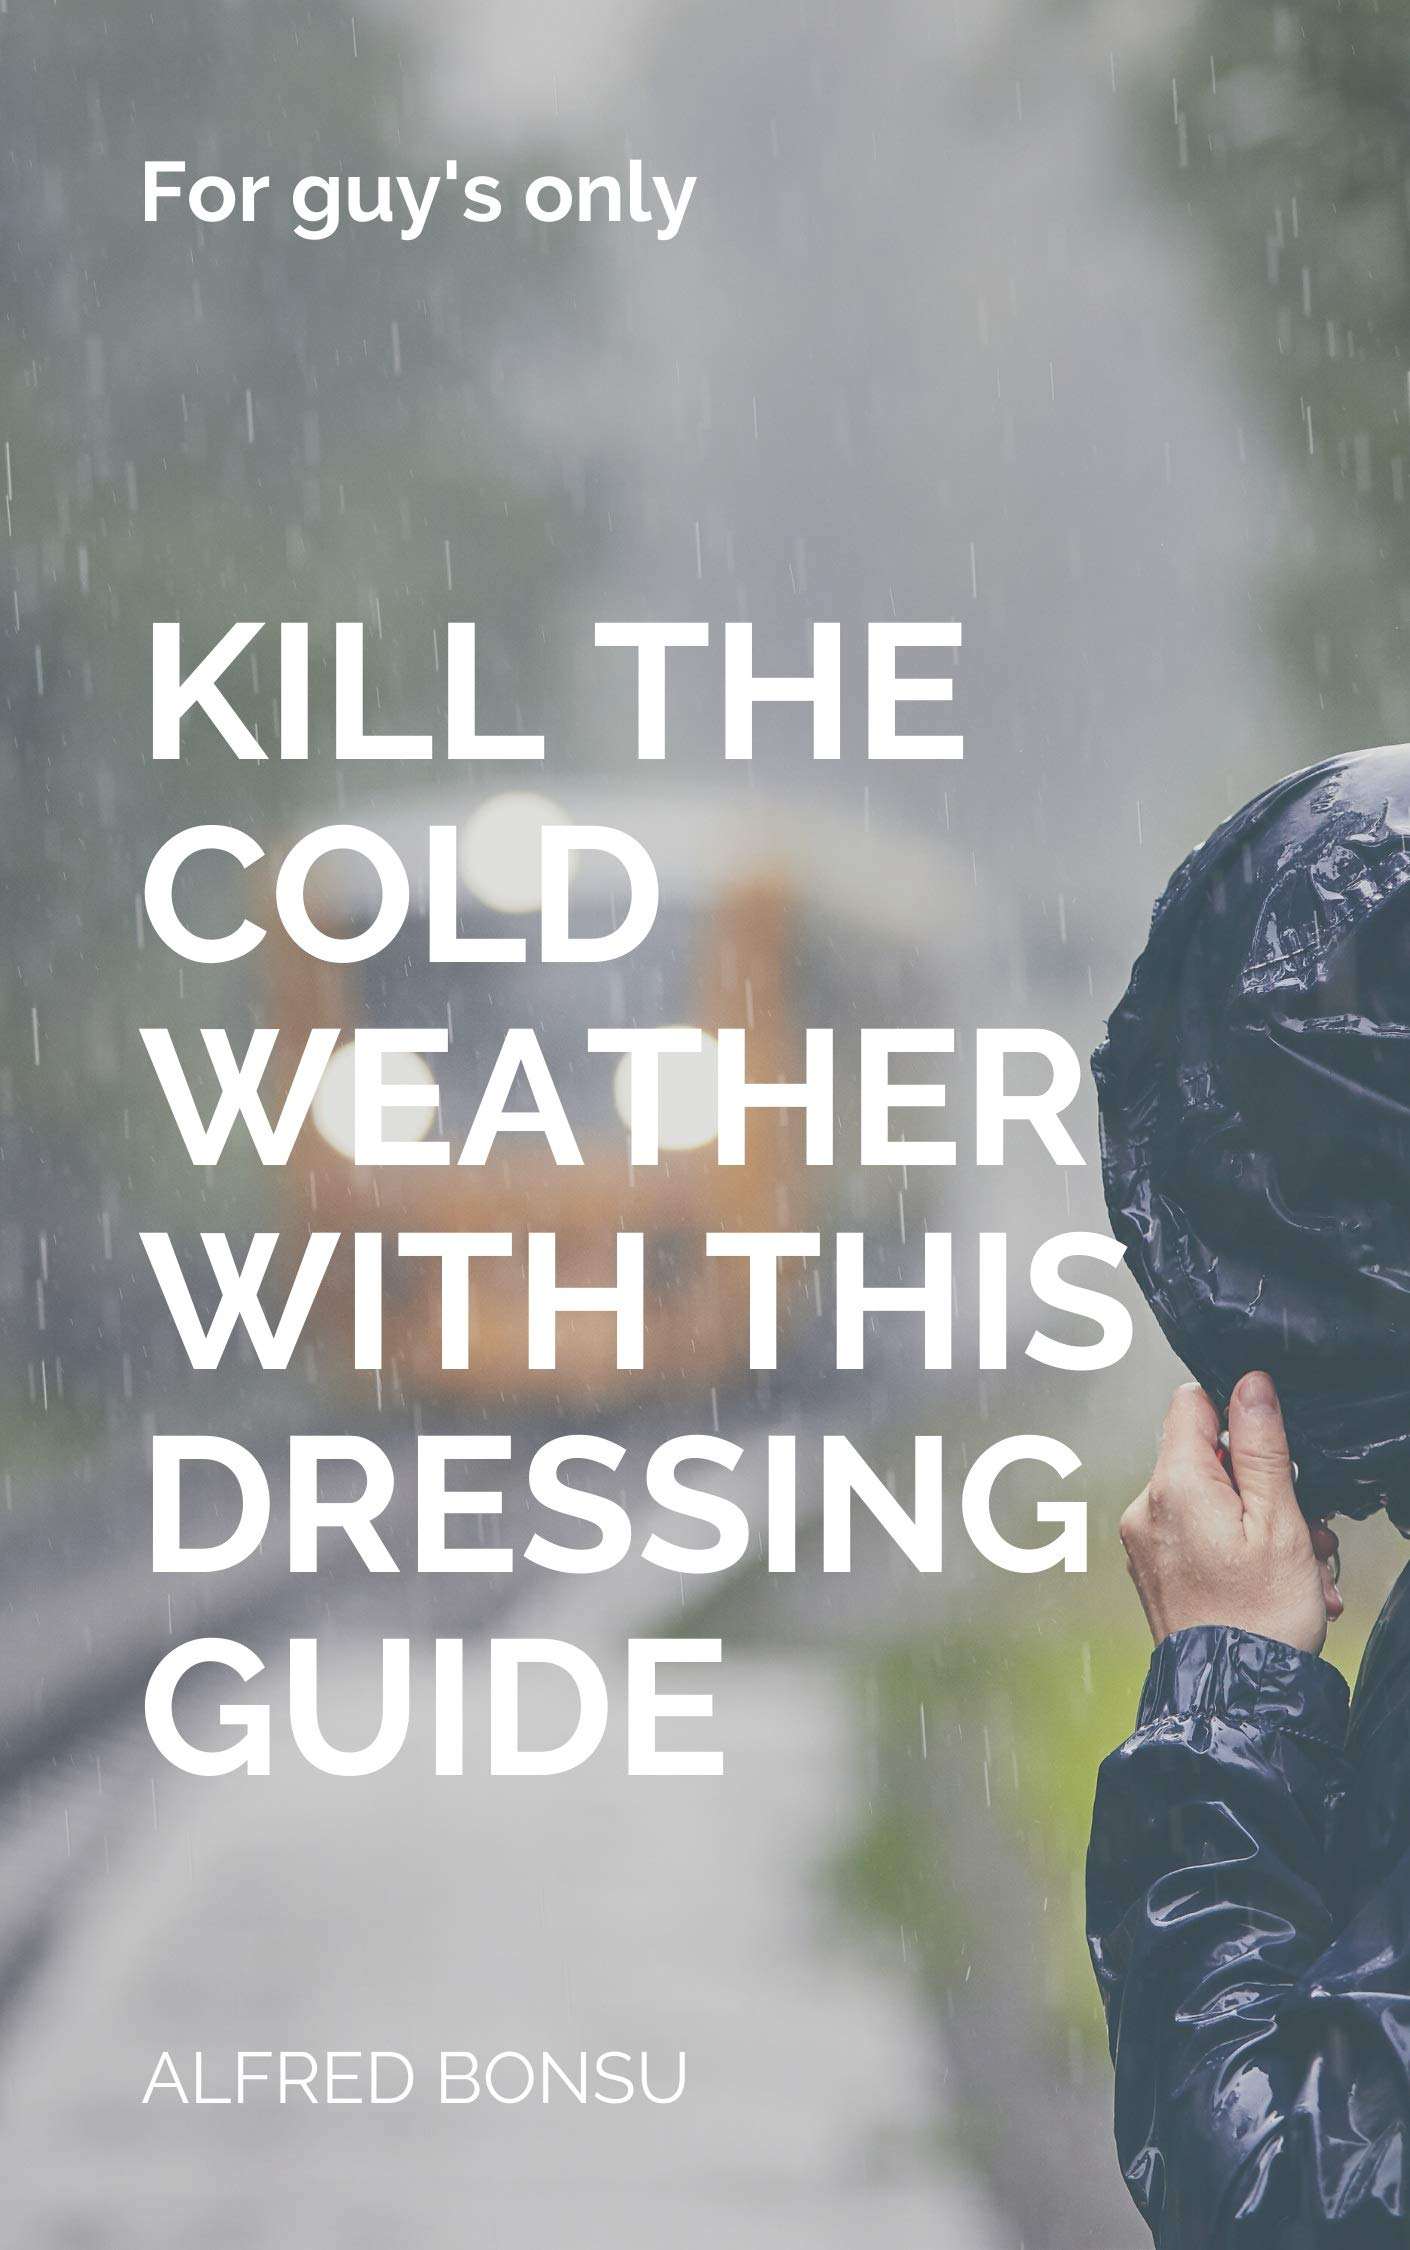 Kill the cold weather with this dressing guide: